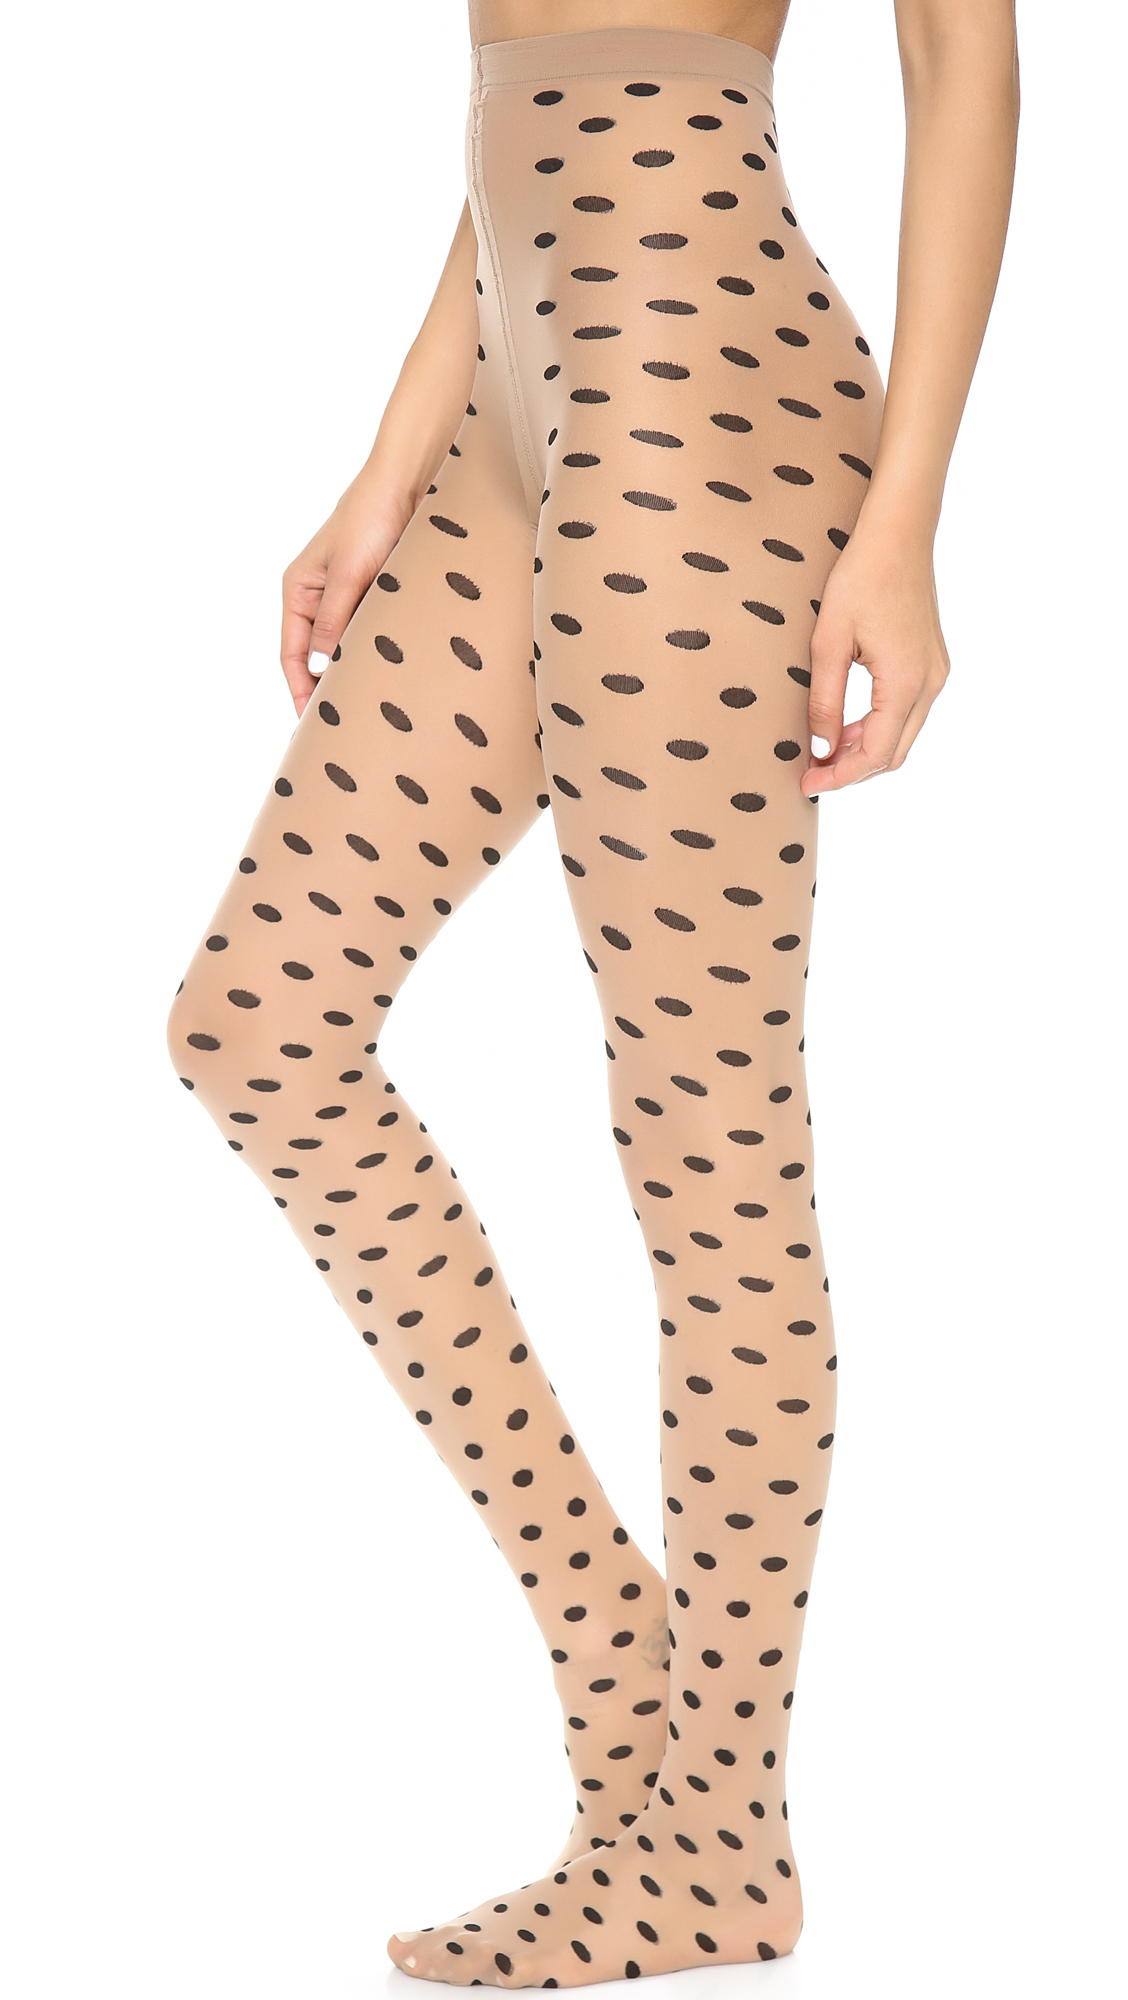 Stockings, Tights and Leggings for. Black Sheer Pantyhose with Woven Polka Dot Thigh Highs (Item # HOSE) In Stock! $ $ Womens Black and White Stripe Tights (Item # HOSE) In Stock! $ $ White Fishnet Leggings (Item # HOSE) In Stock! $ $